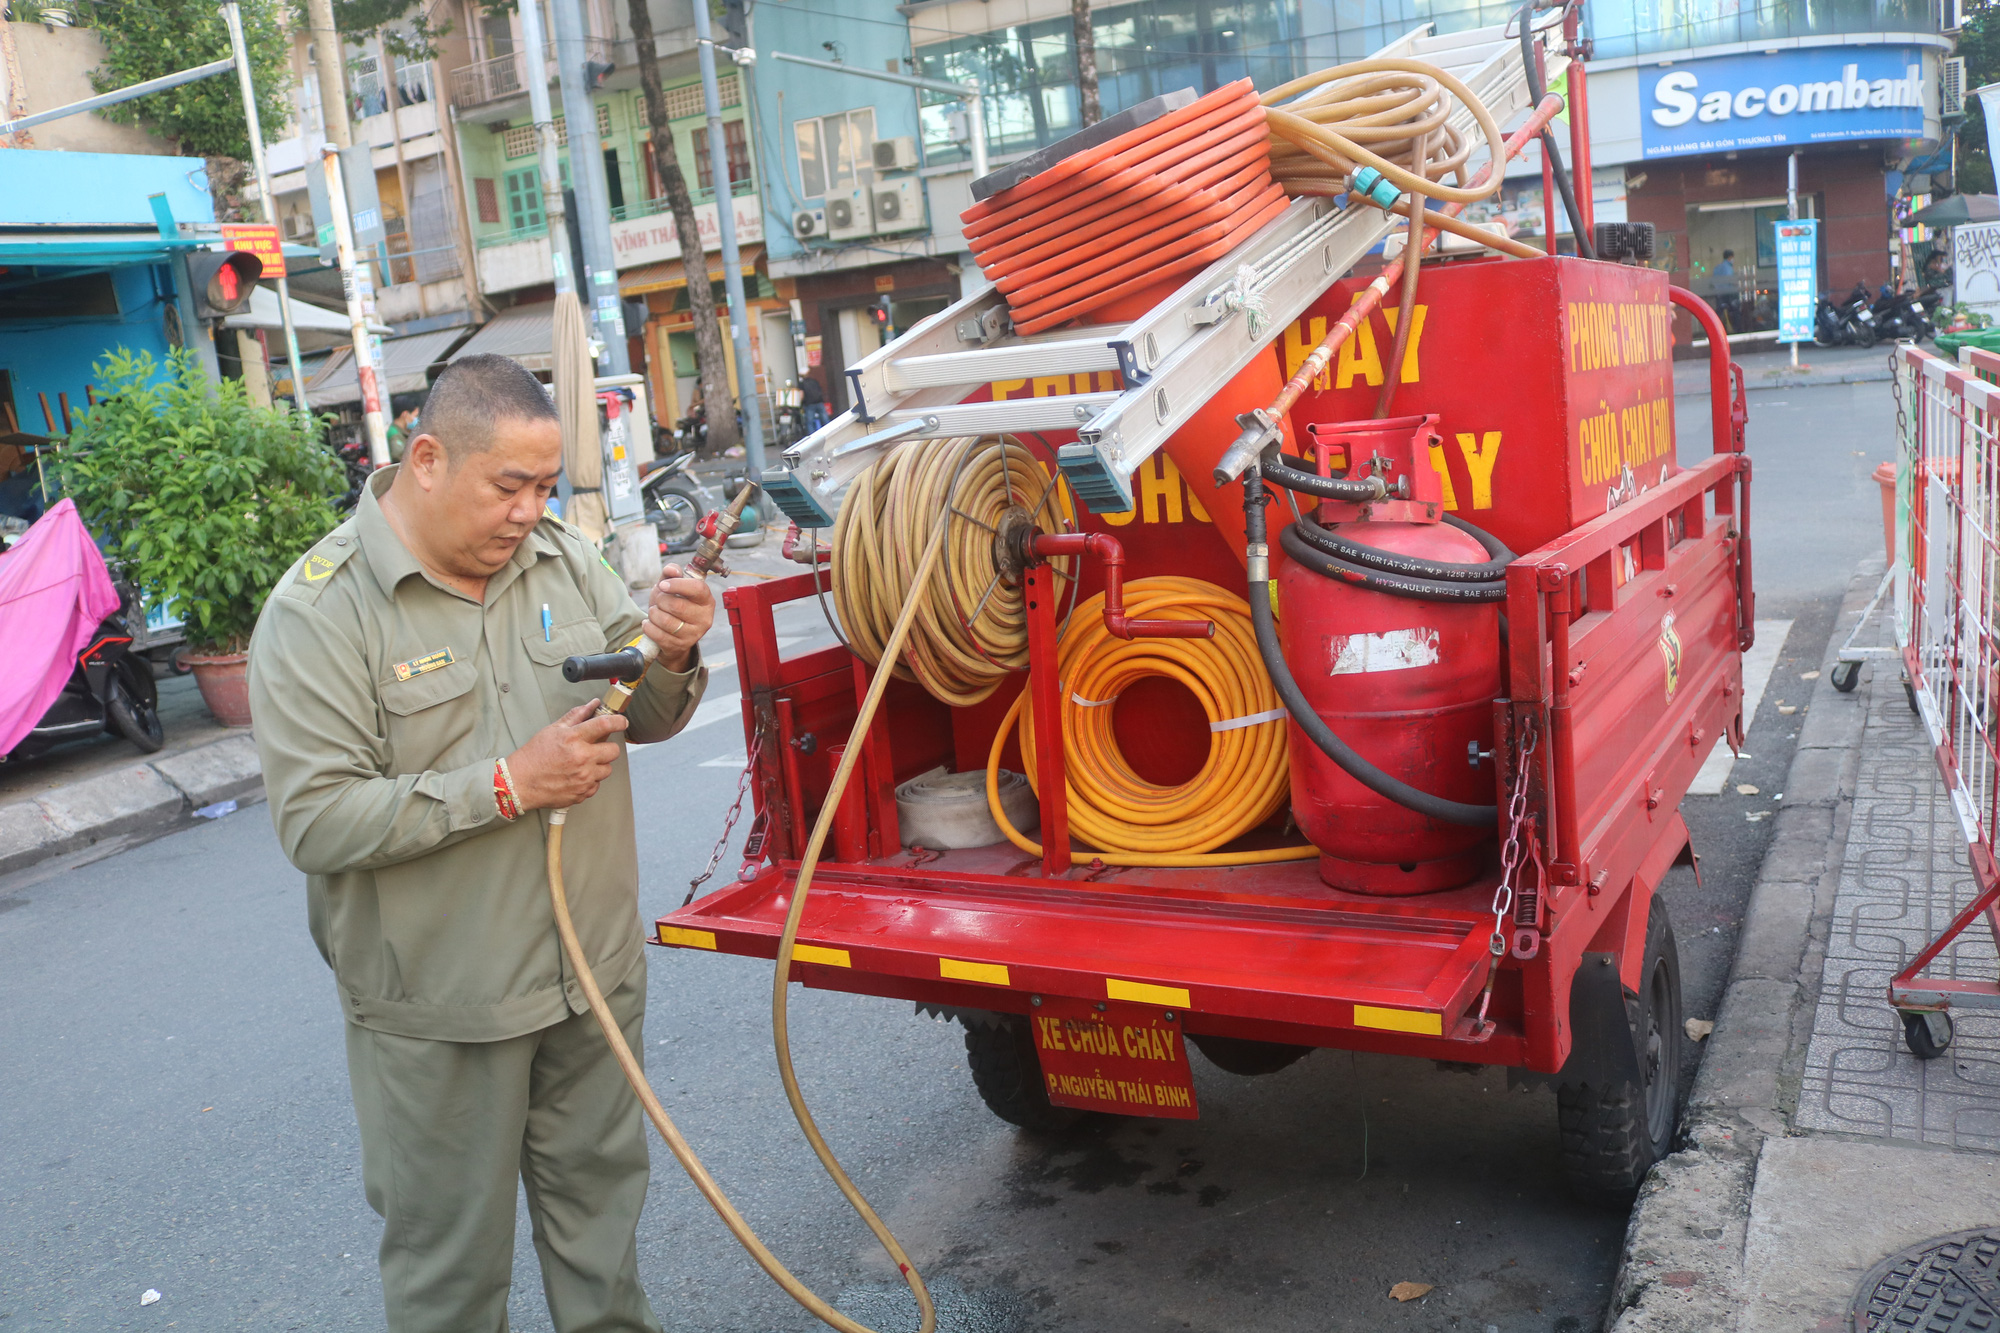 Ly Nhon Thanh inspects the hose of his fire bike modified from a three-wheeled motorbike. Photo: Kim Ut / Tuoi Tre